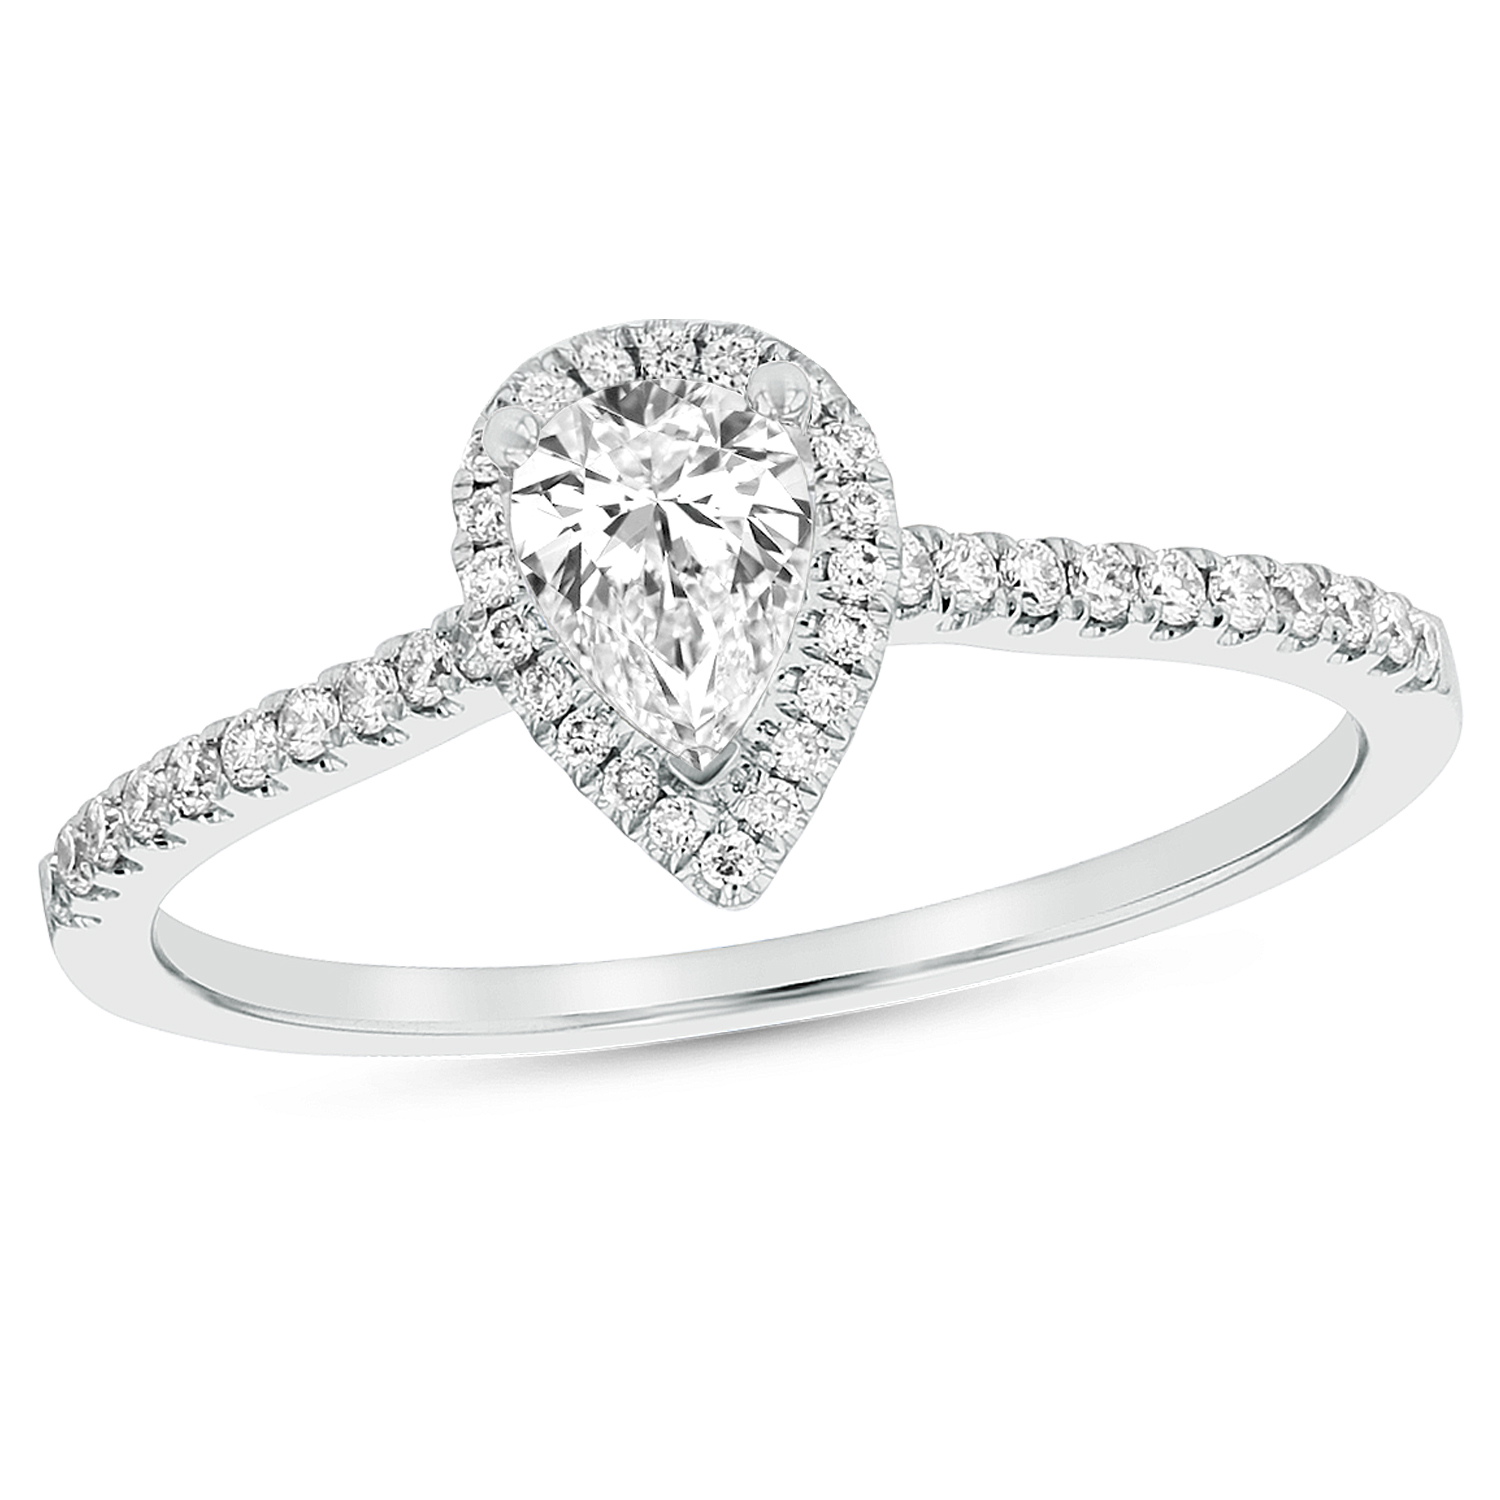 View 0.59ctw Diamond Engagement Ring in 18k White Gold